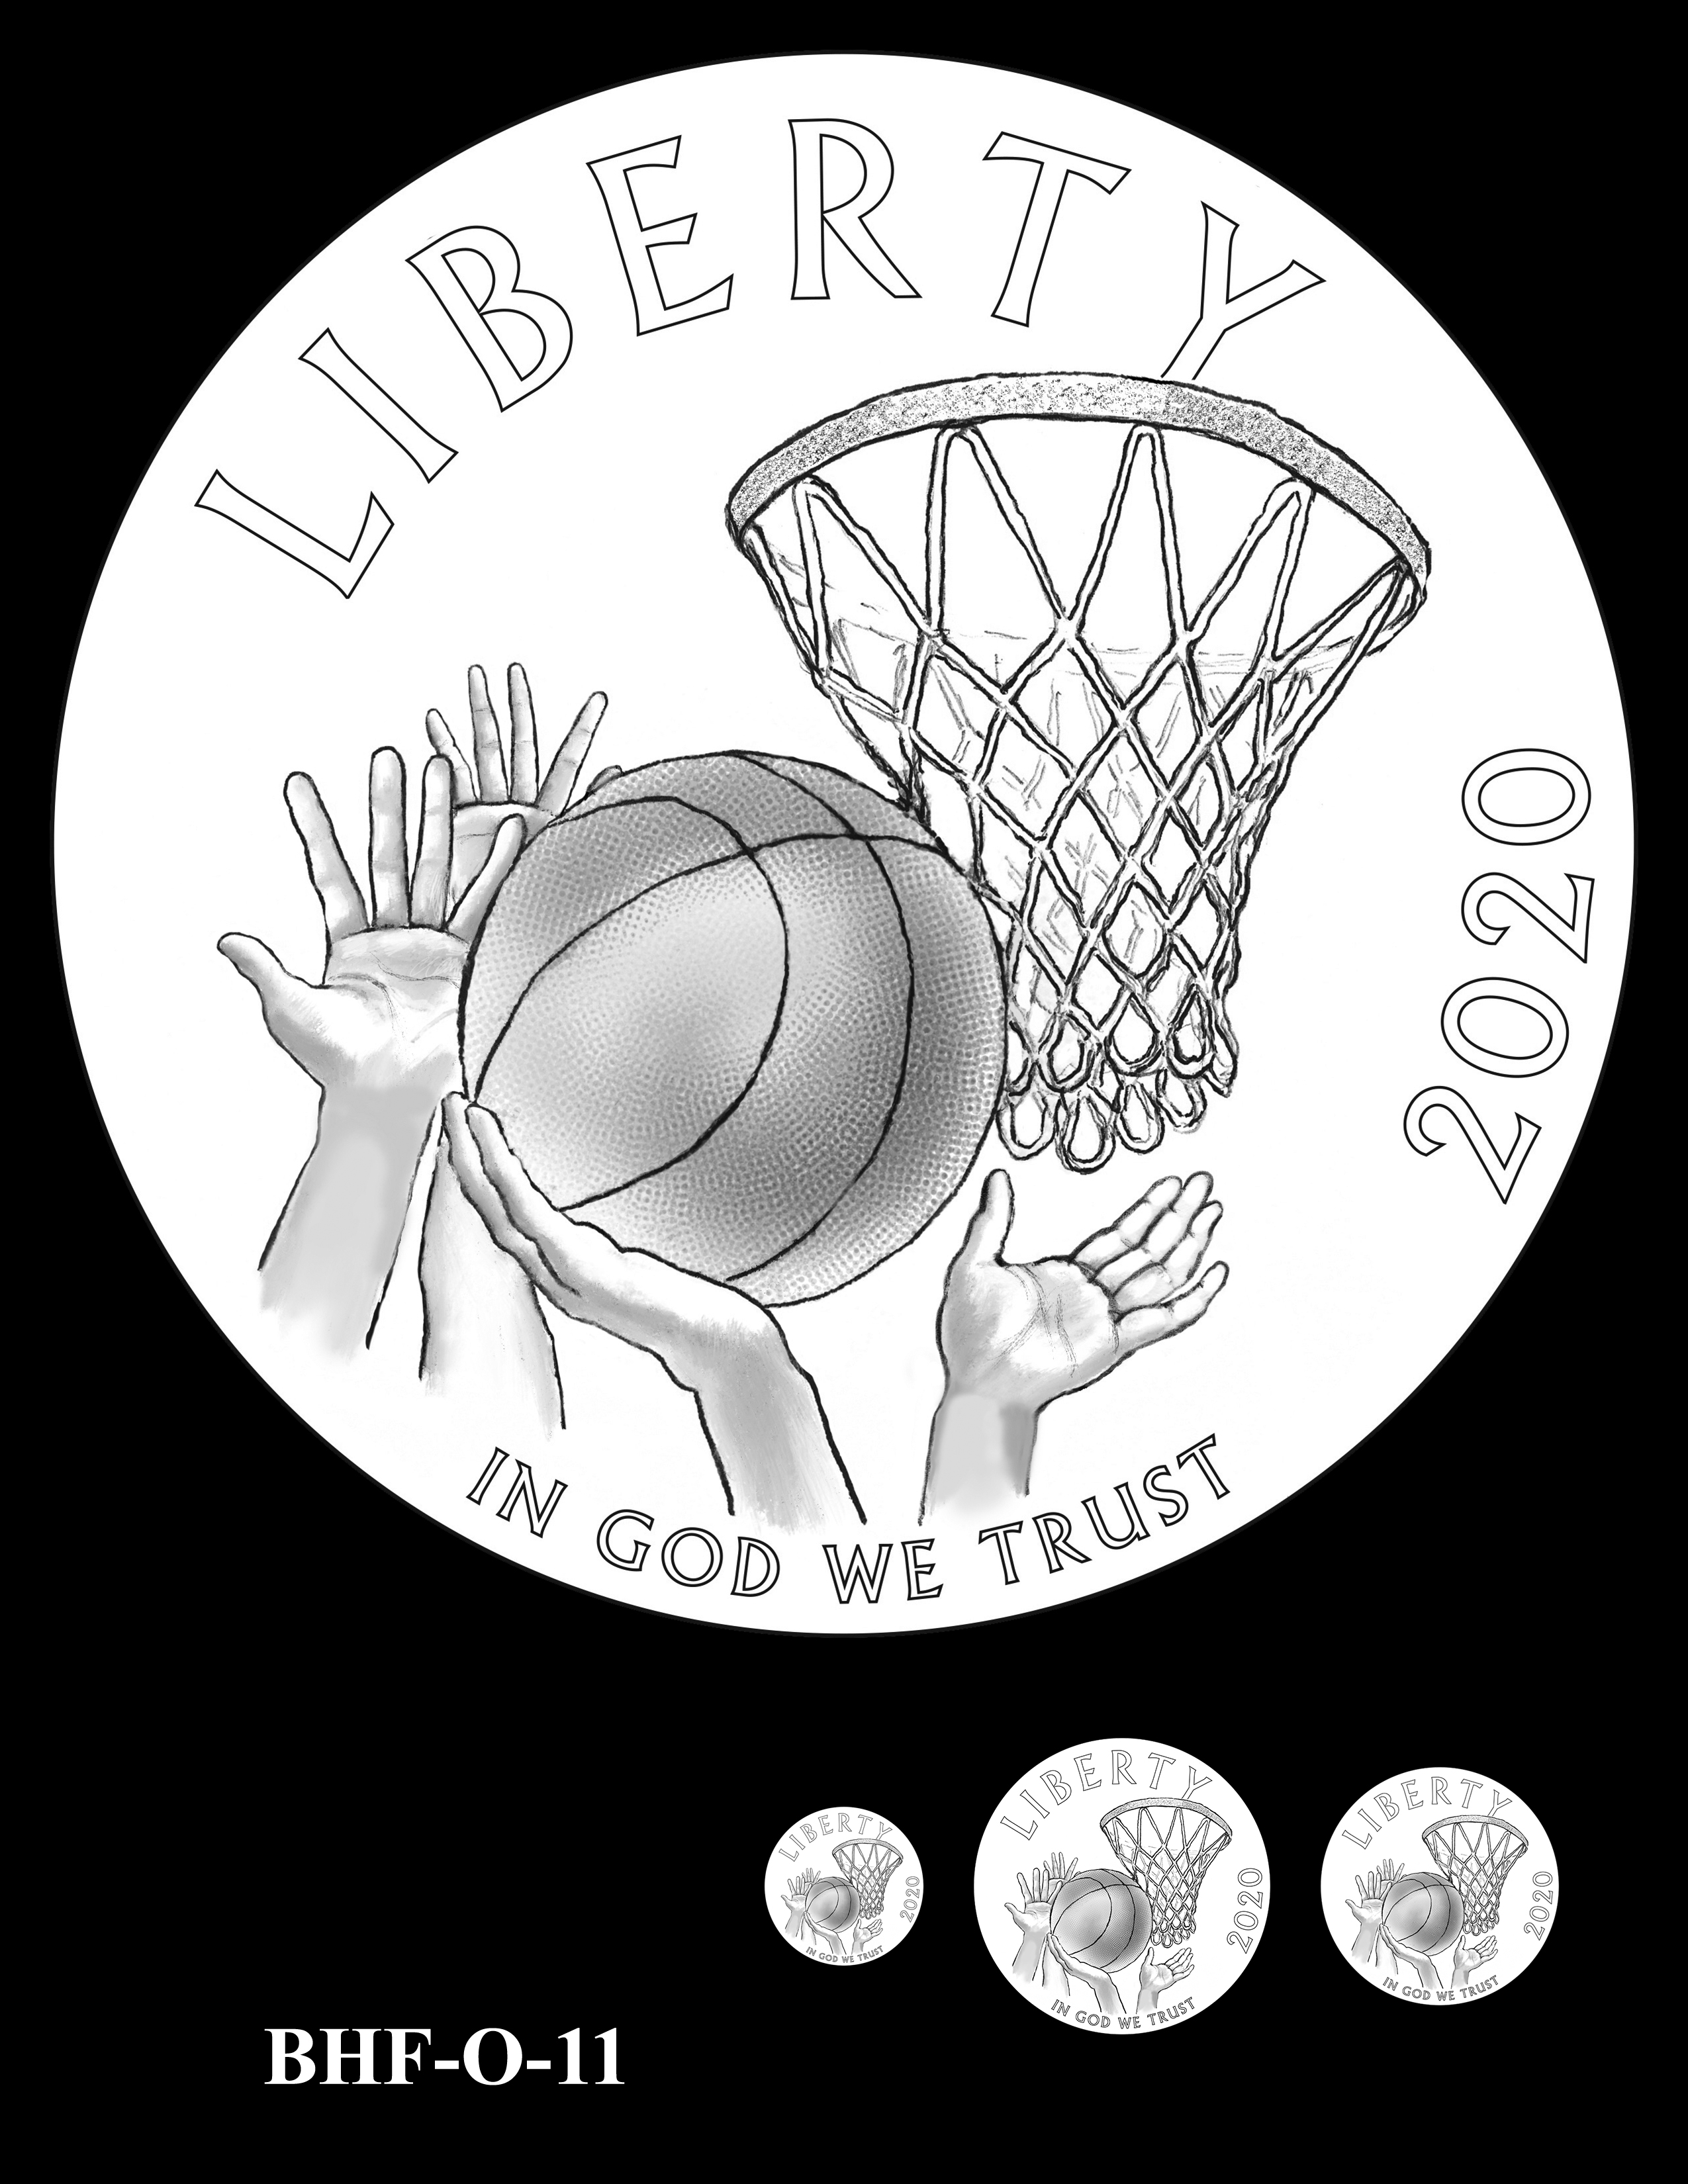 BHF-O-11 -- 2020 Basketball Hall of Fame Commemorative Coin Program - Common Obverse